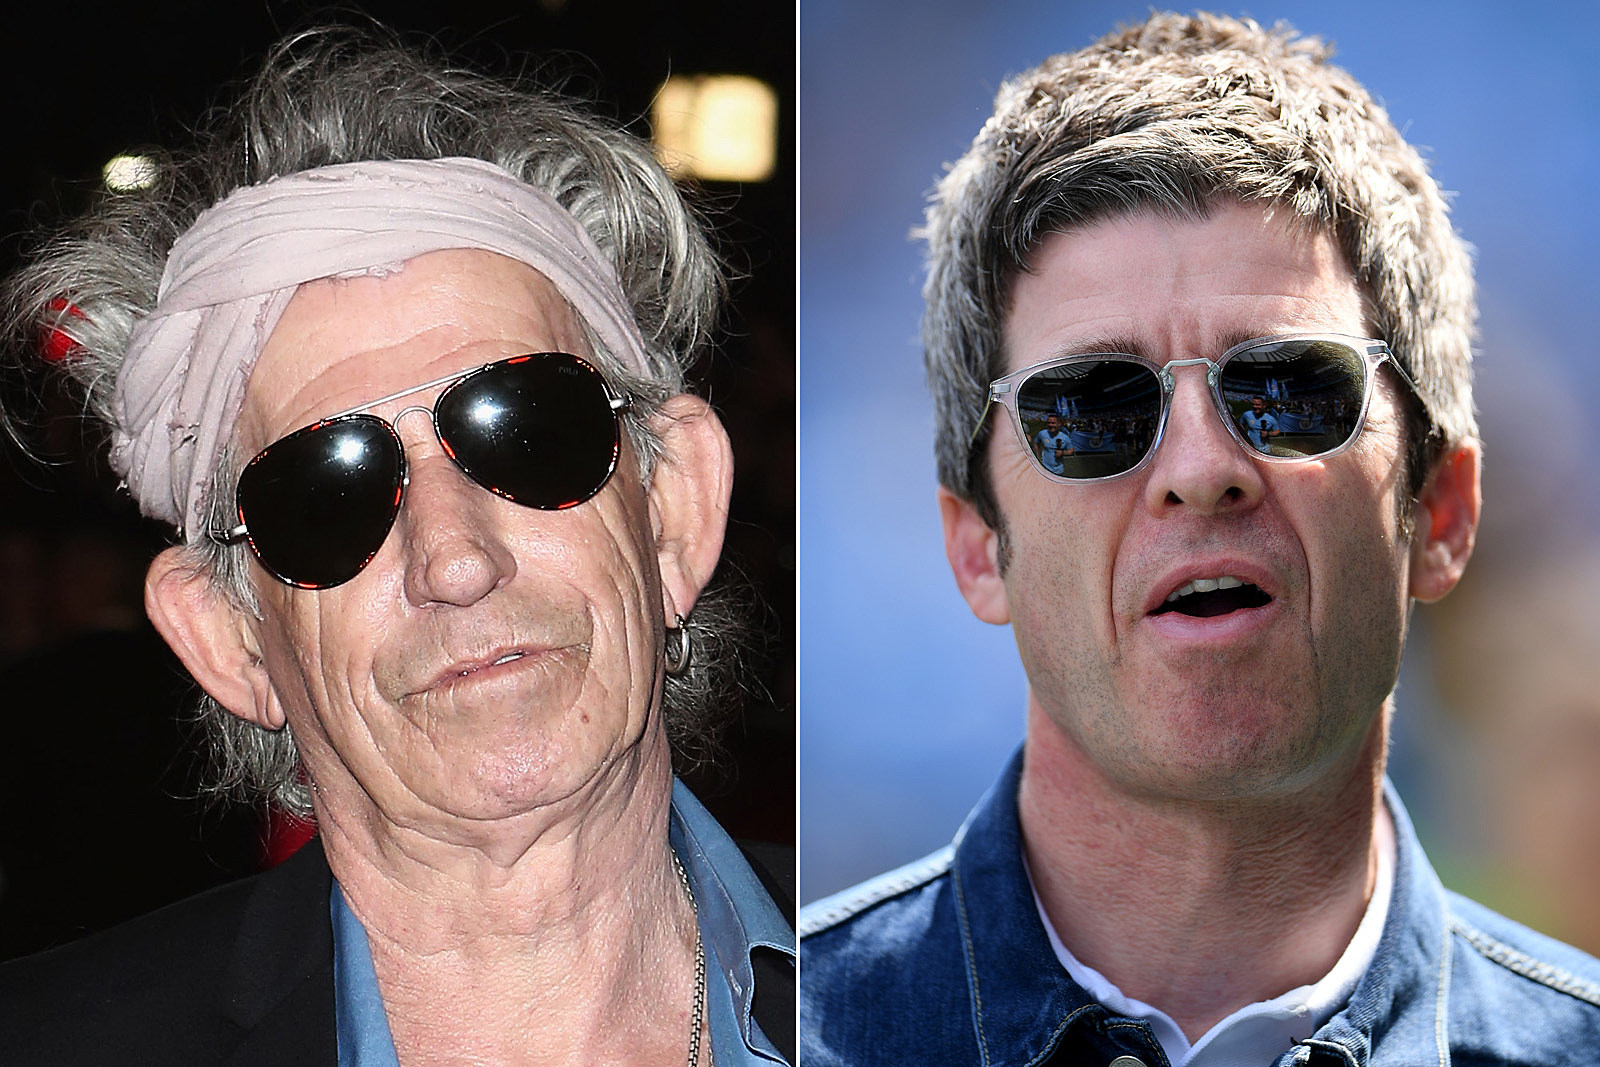 Keith Richards and Noel Gallagher Compared Bad Bandmates